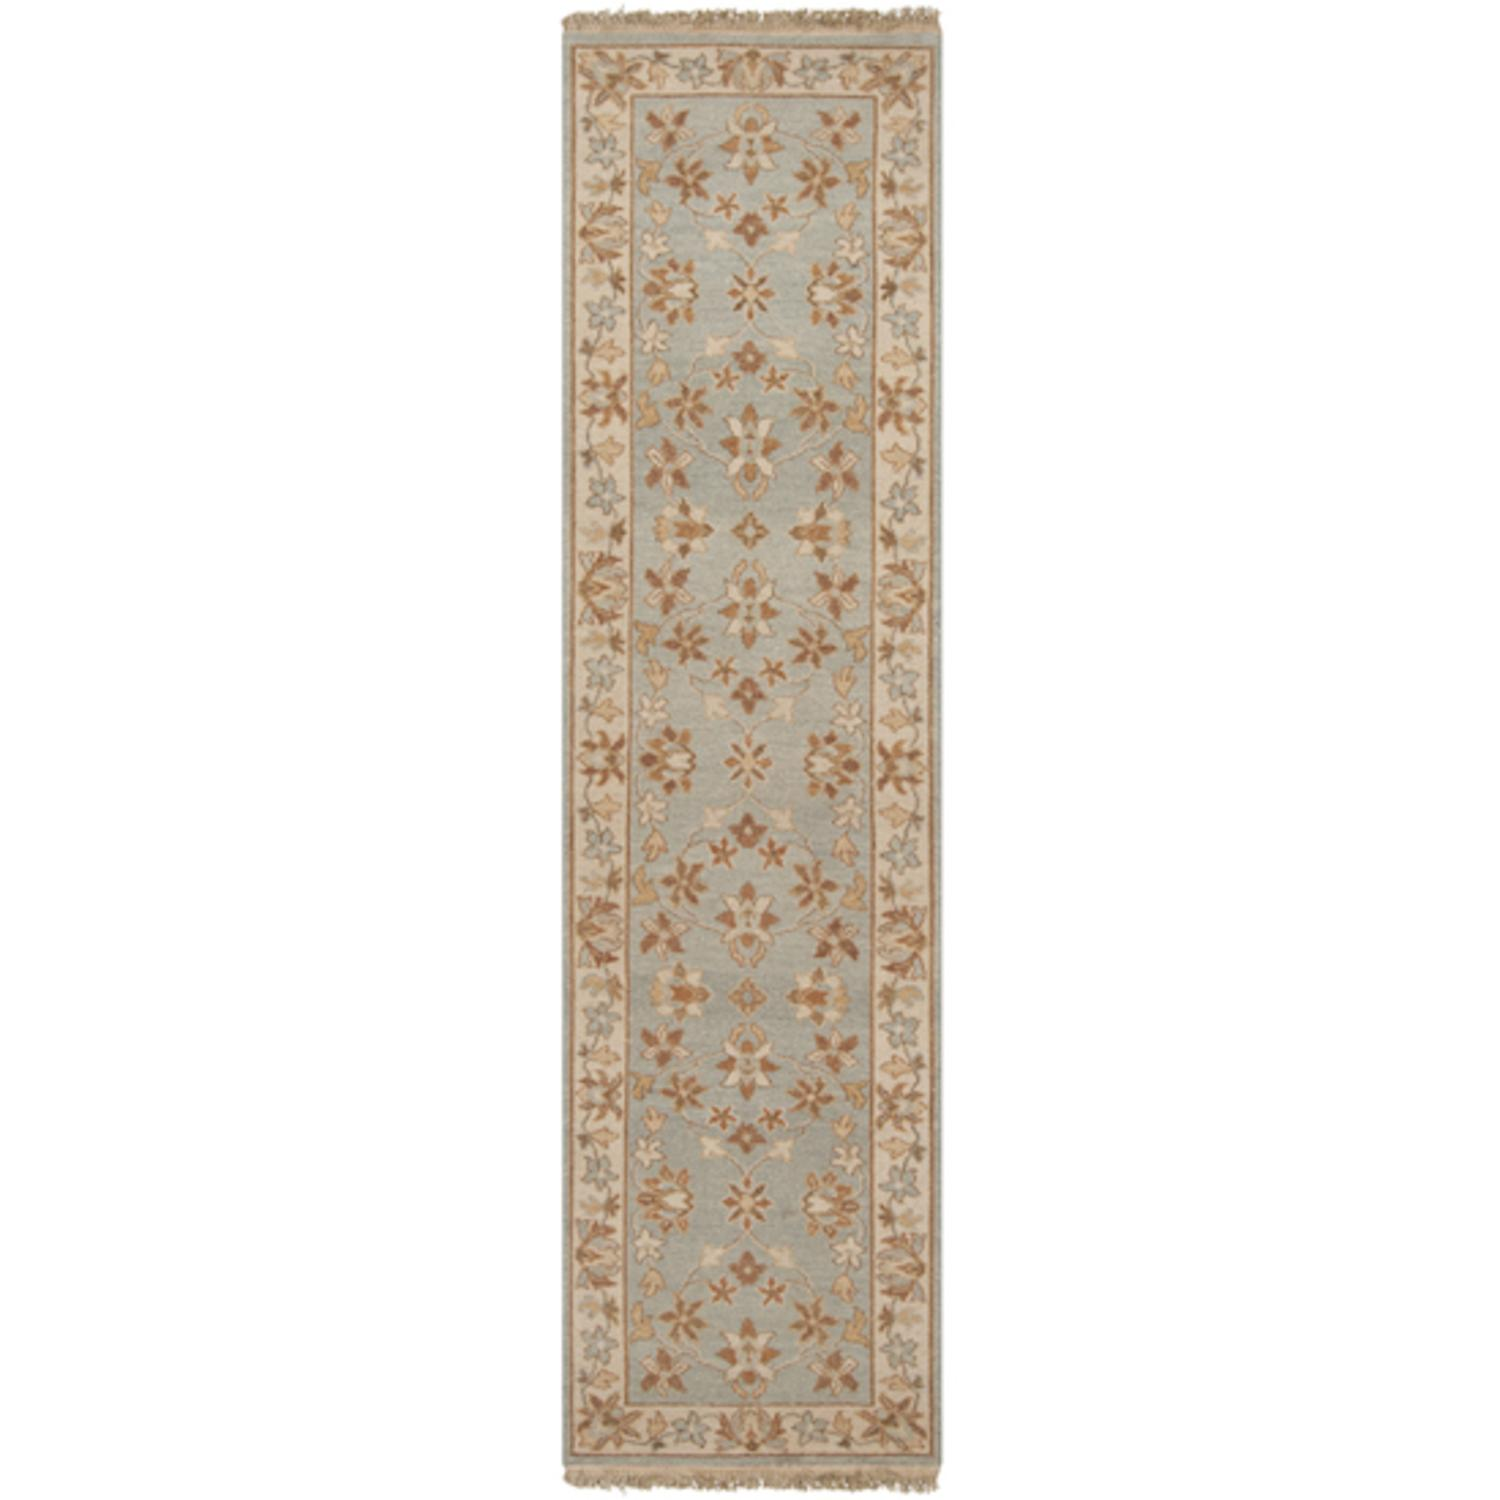 2.5' x 10' La Hacienda Fringed Khaki, Gray Sage and Bronze Wool Area Runner Rug